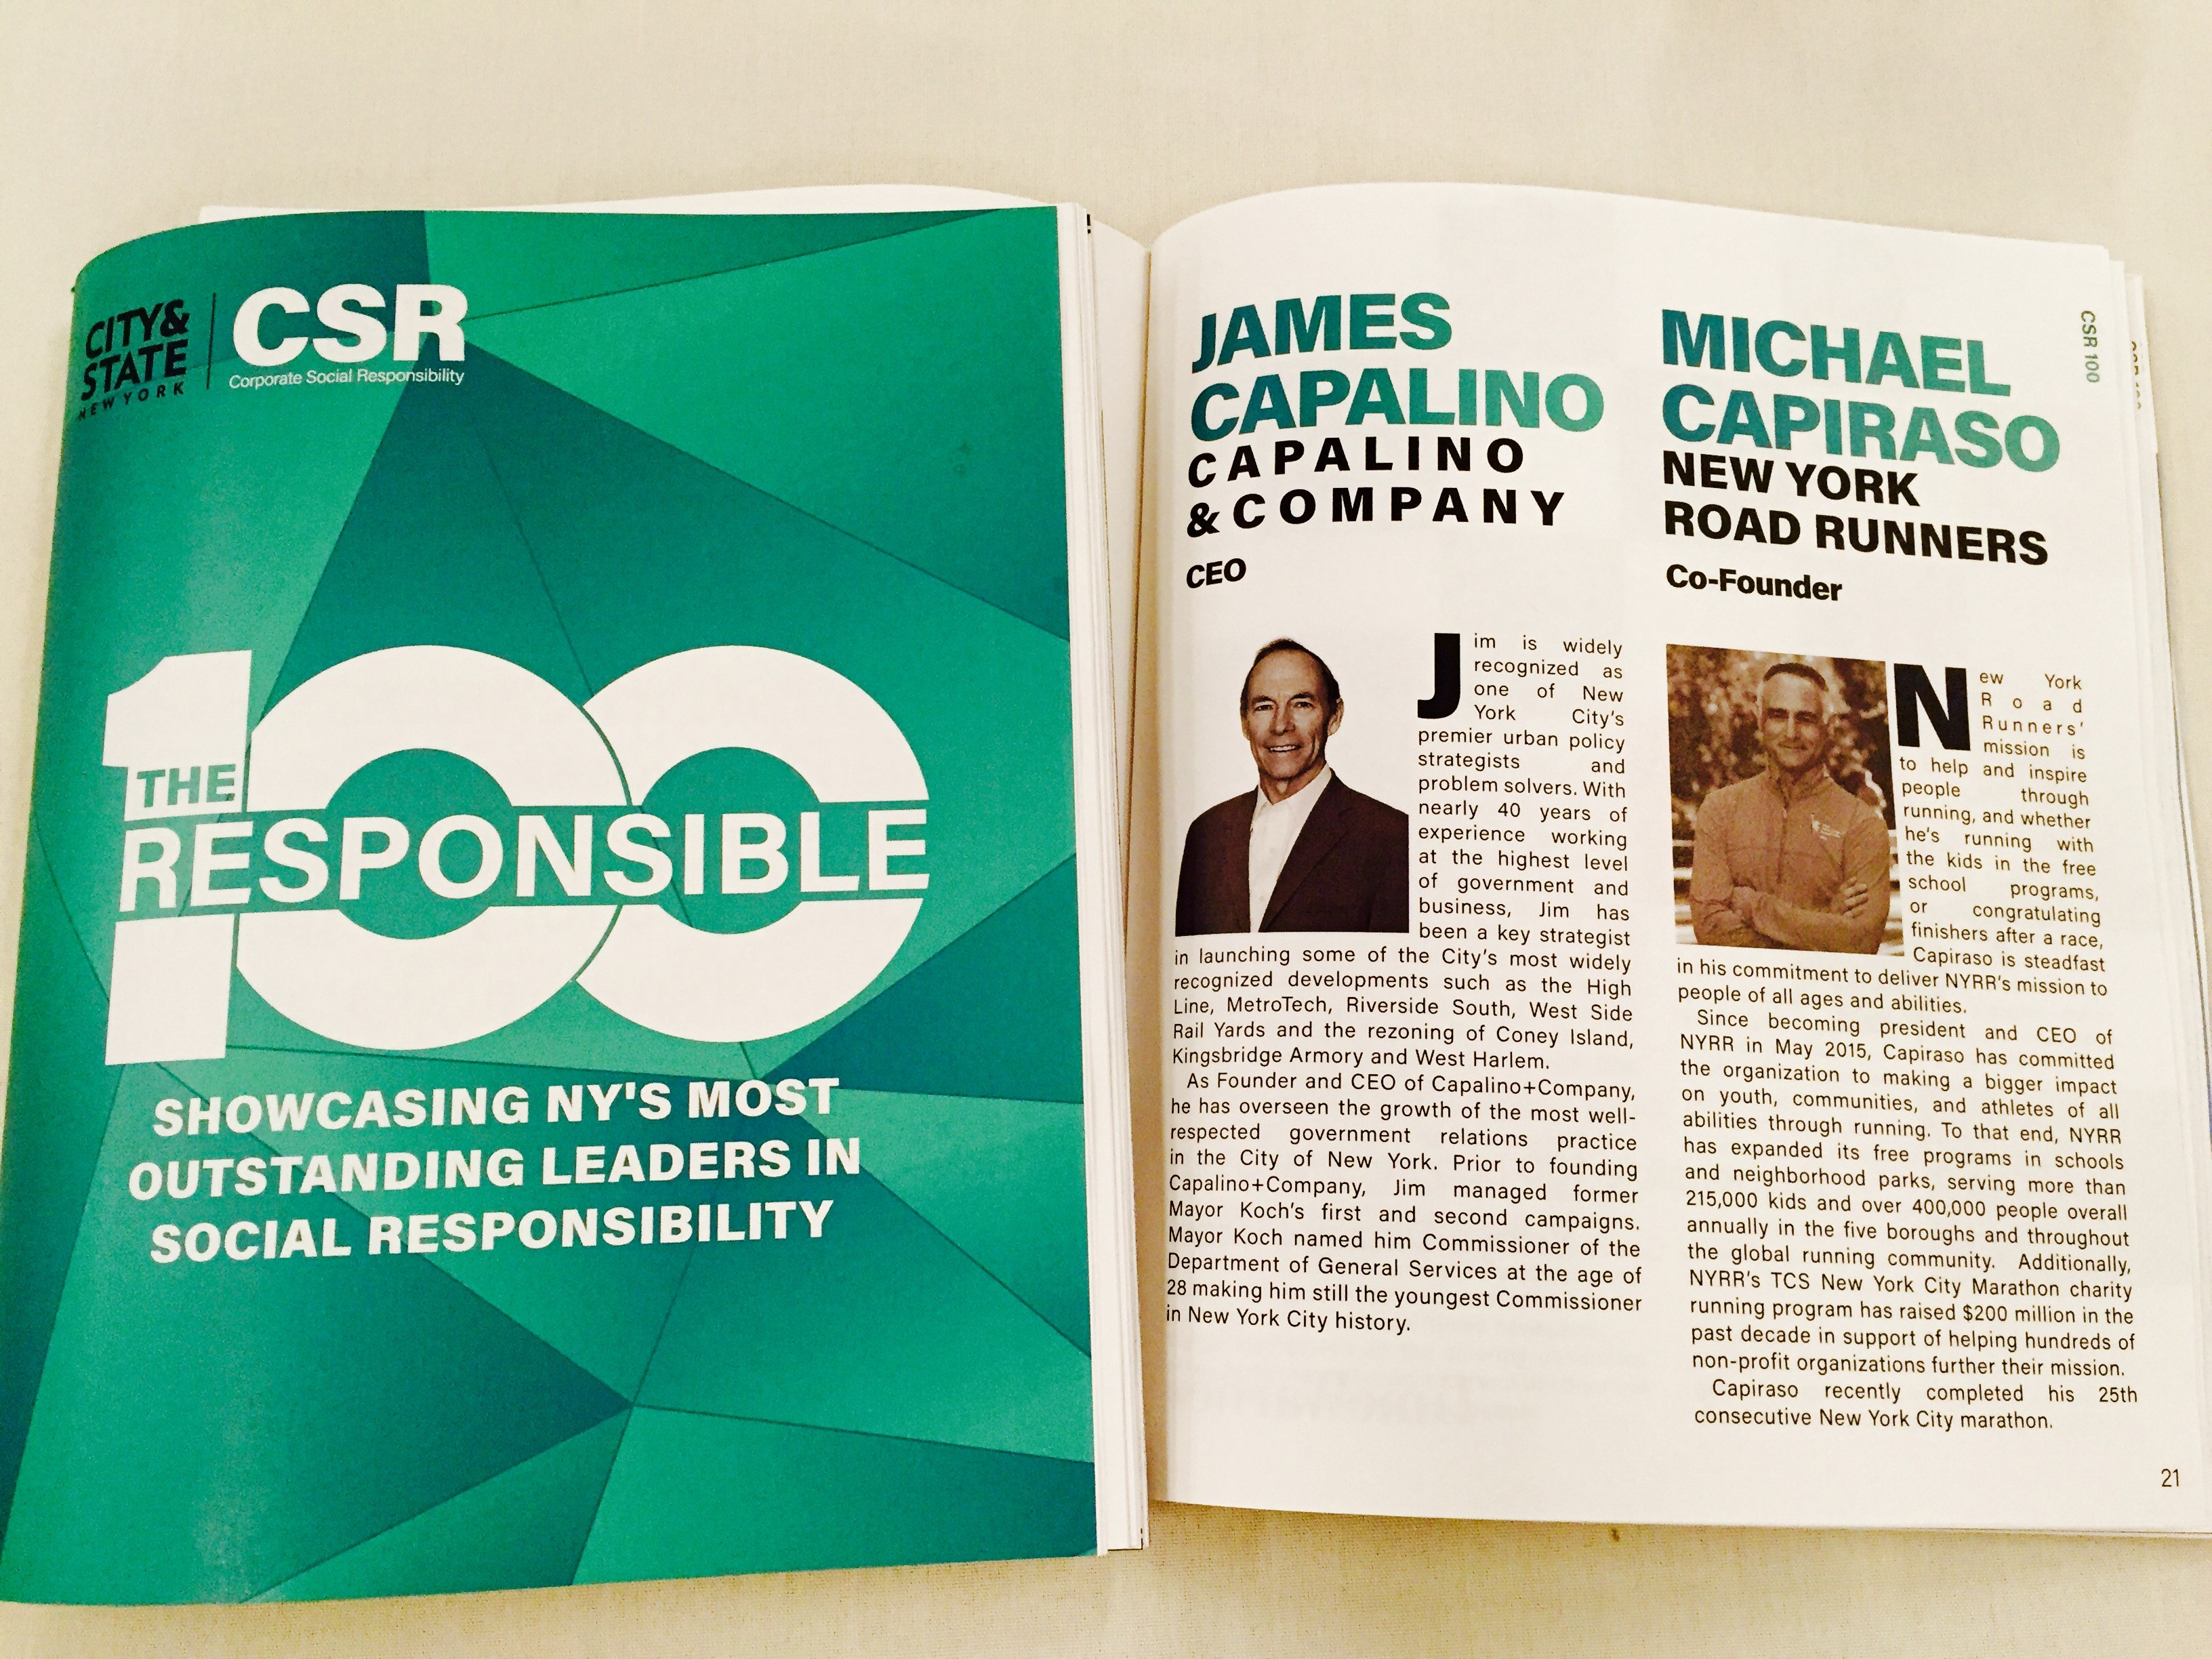 Jim Capalino honored at City&State Responsible 100 awards for corporate social responsibility csr